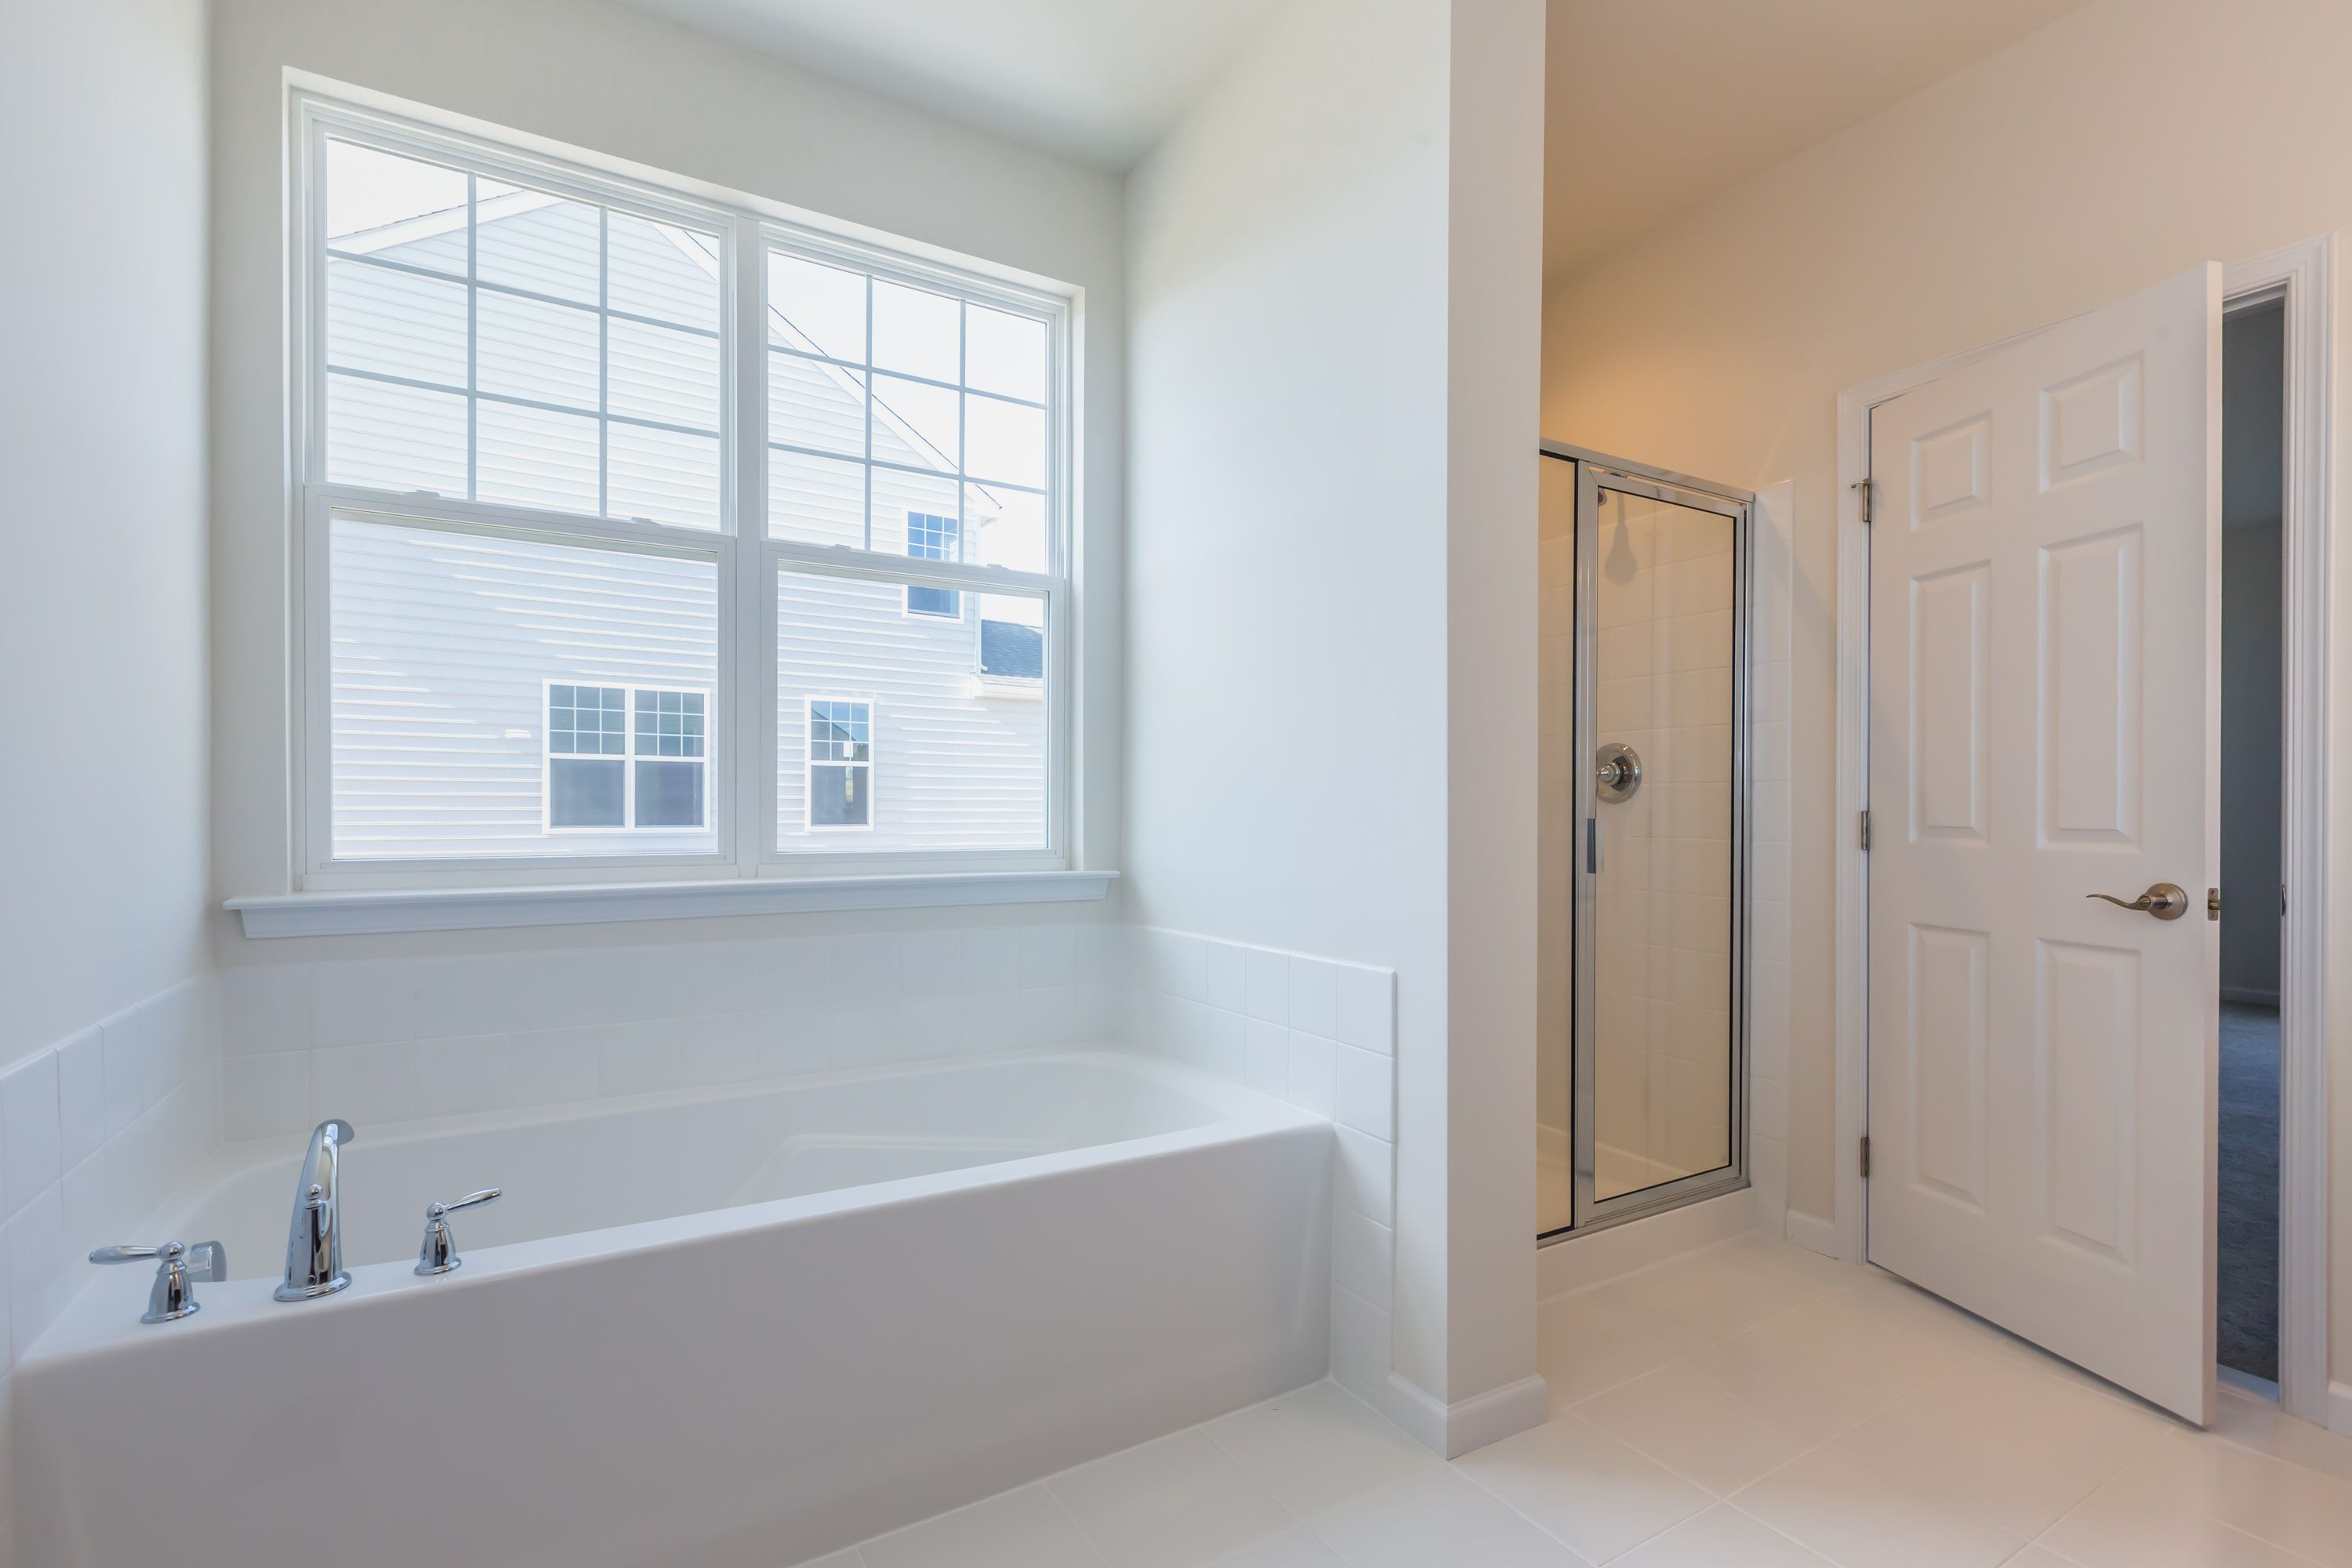 Bathroom featured in the Jamison By Rouse Chamberlin Homes in Philadelphia, PA